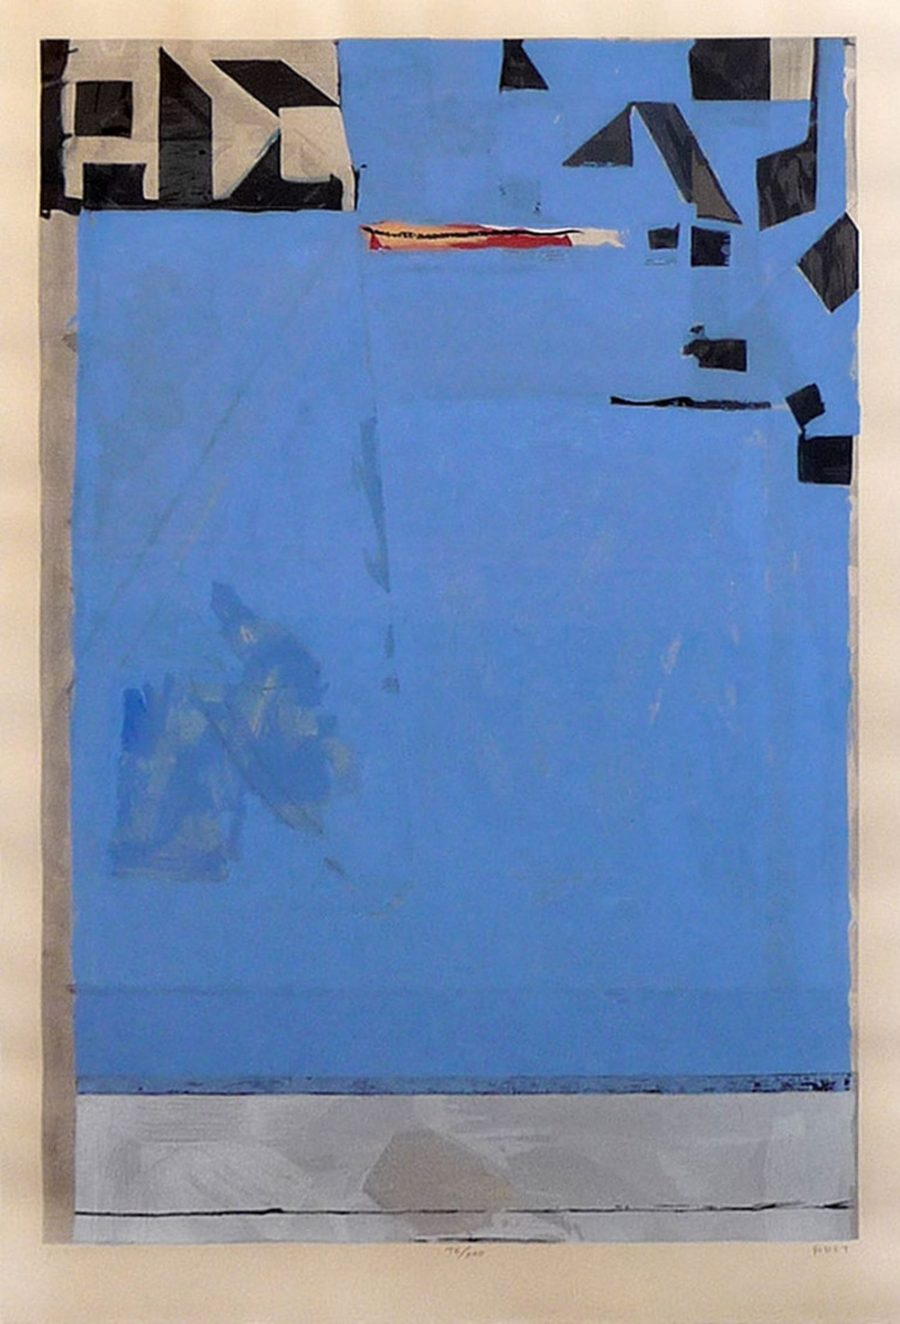 Blue with Red - Artist: Richard Diebenkorn